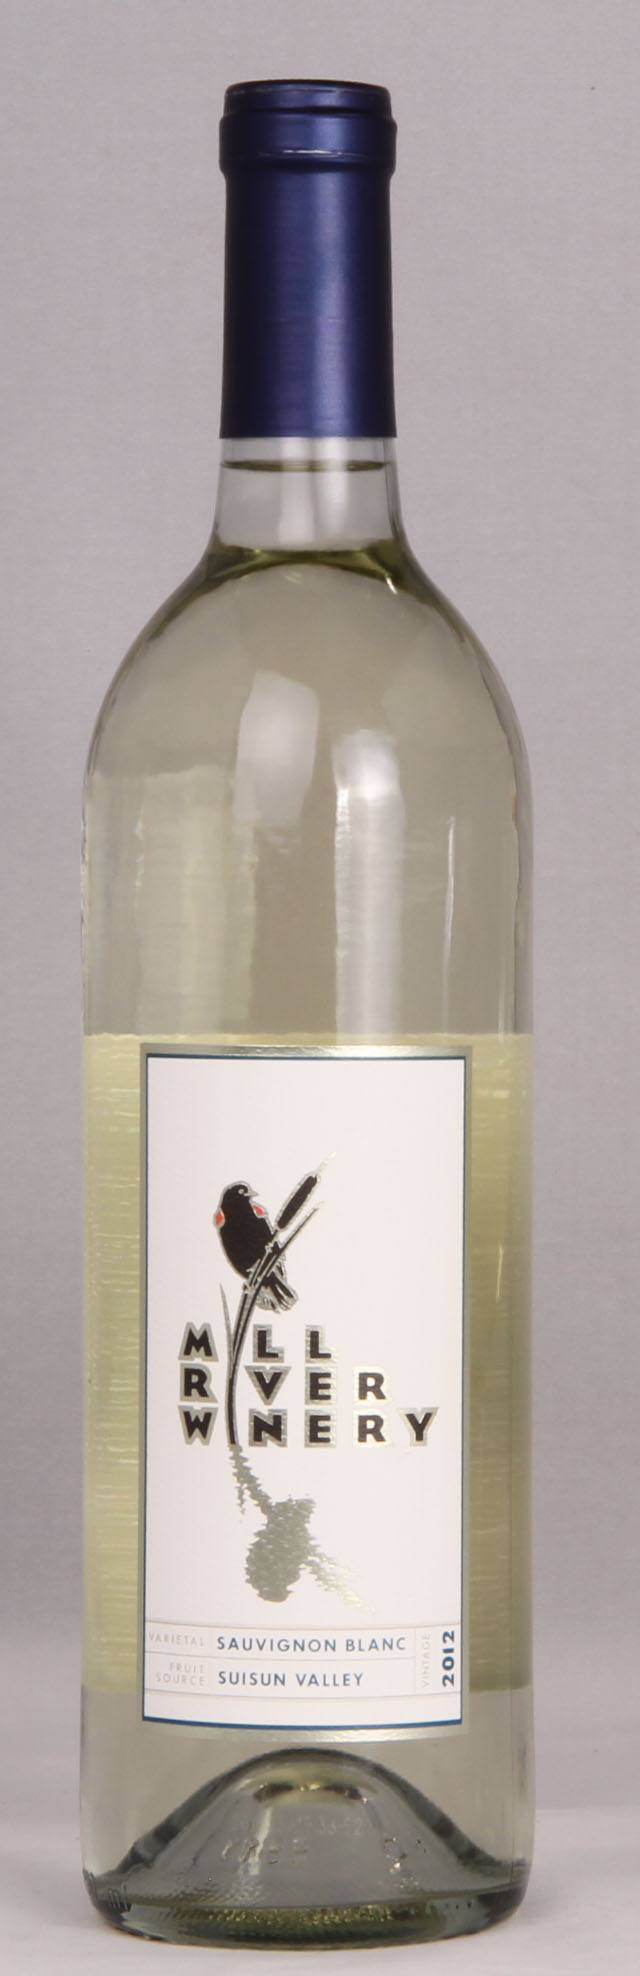 Mill River Winery's Sauvignon Blanc